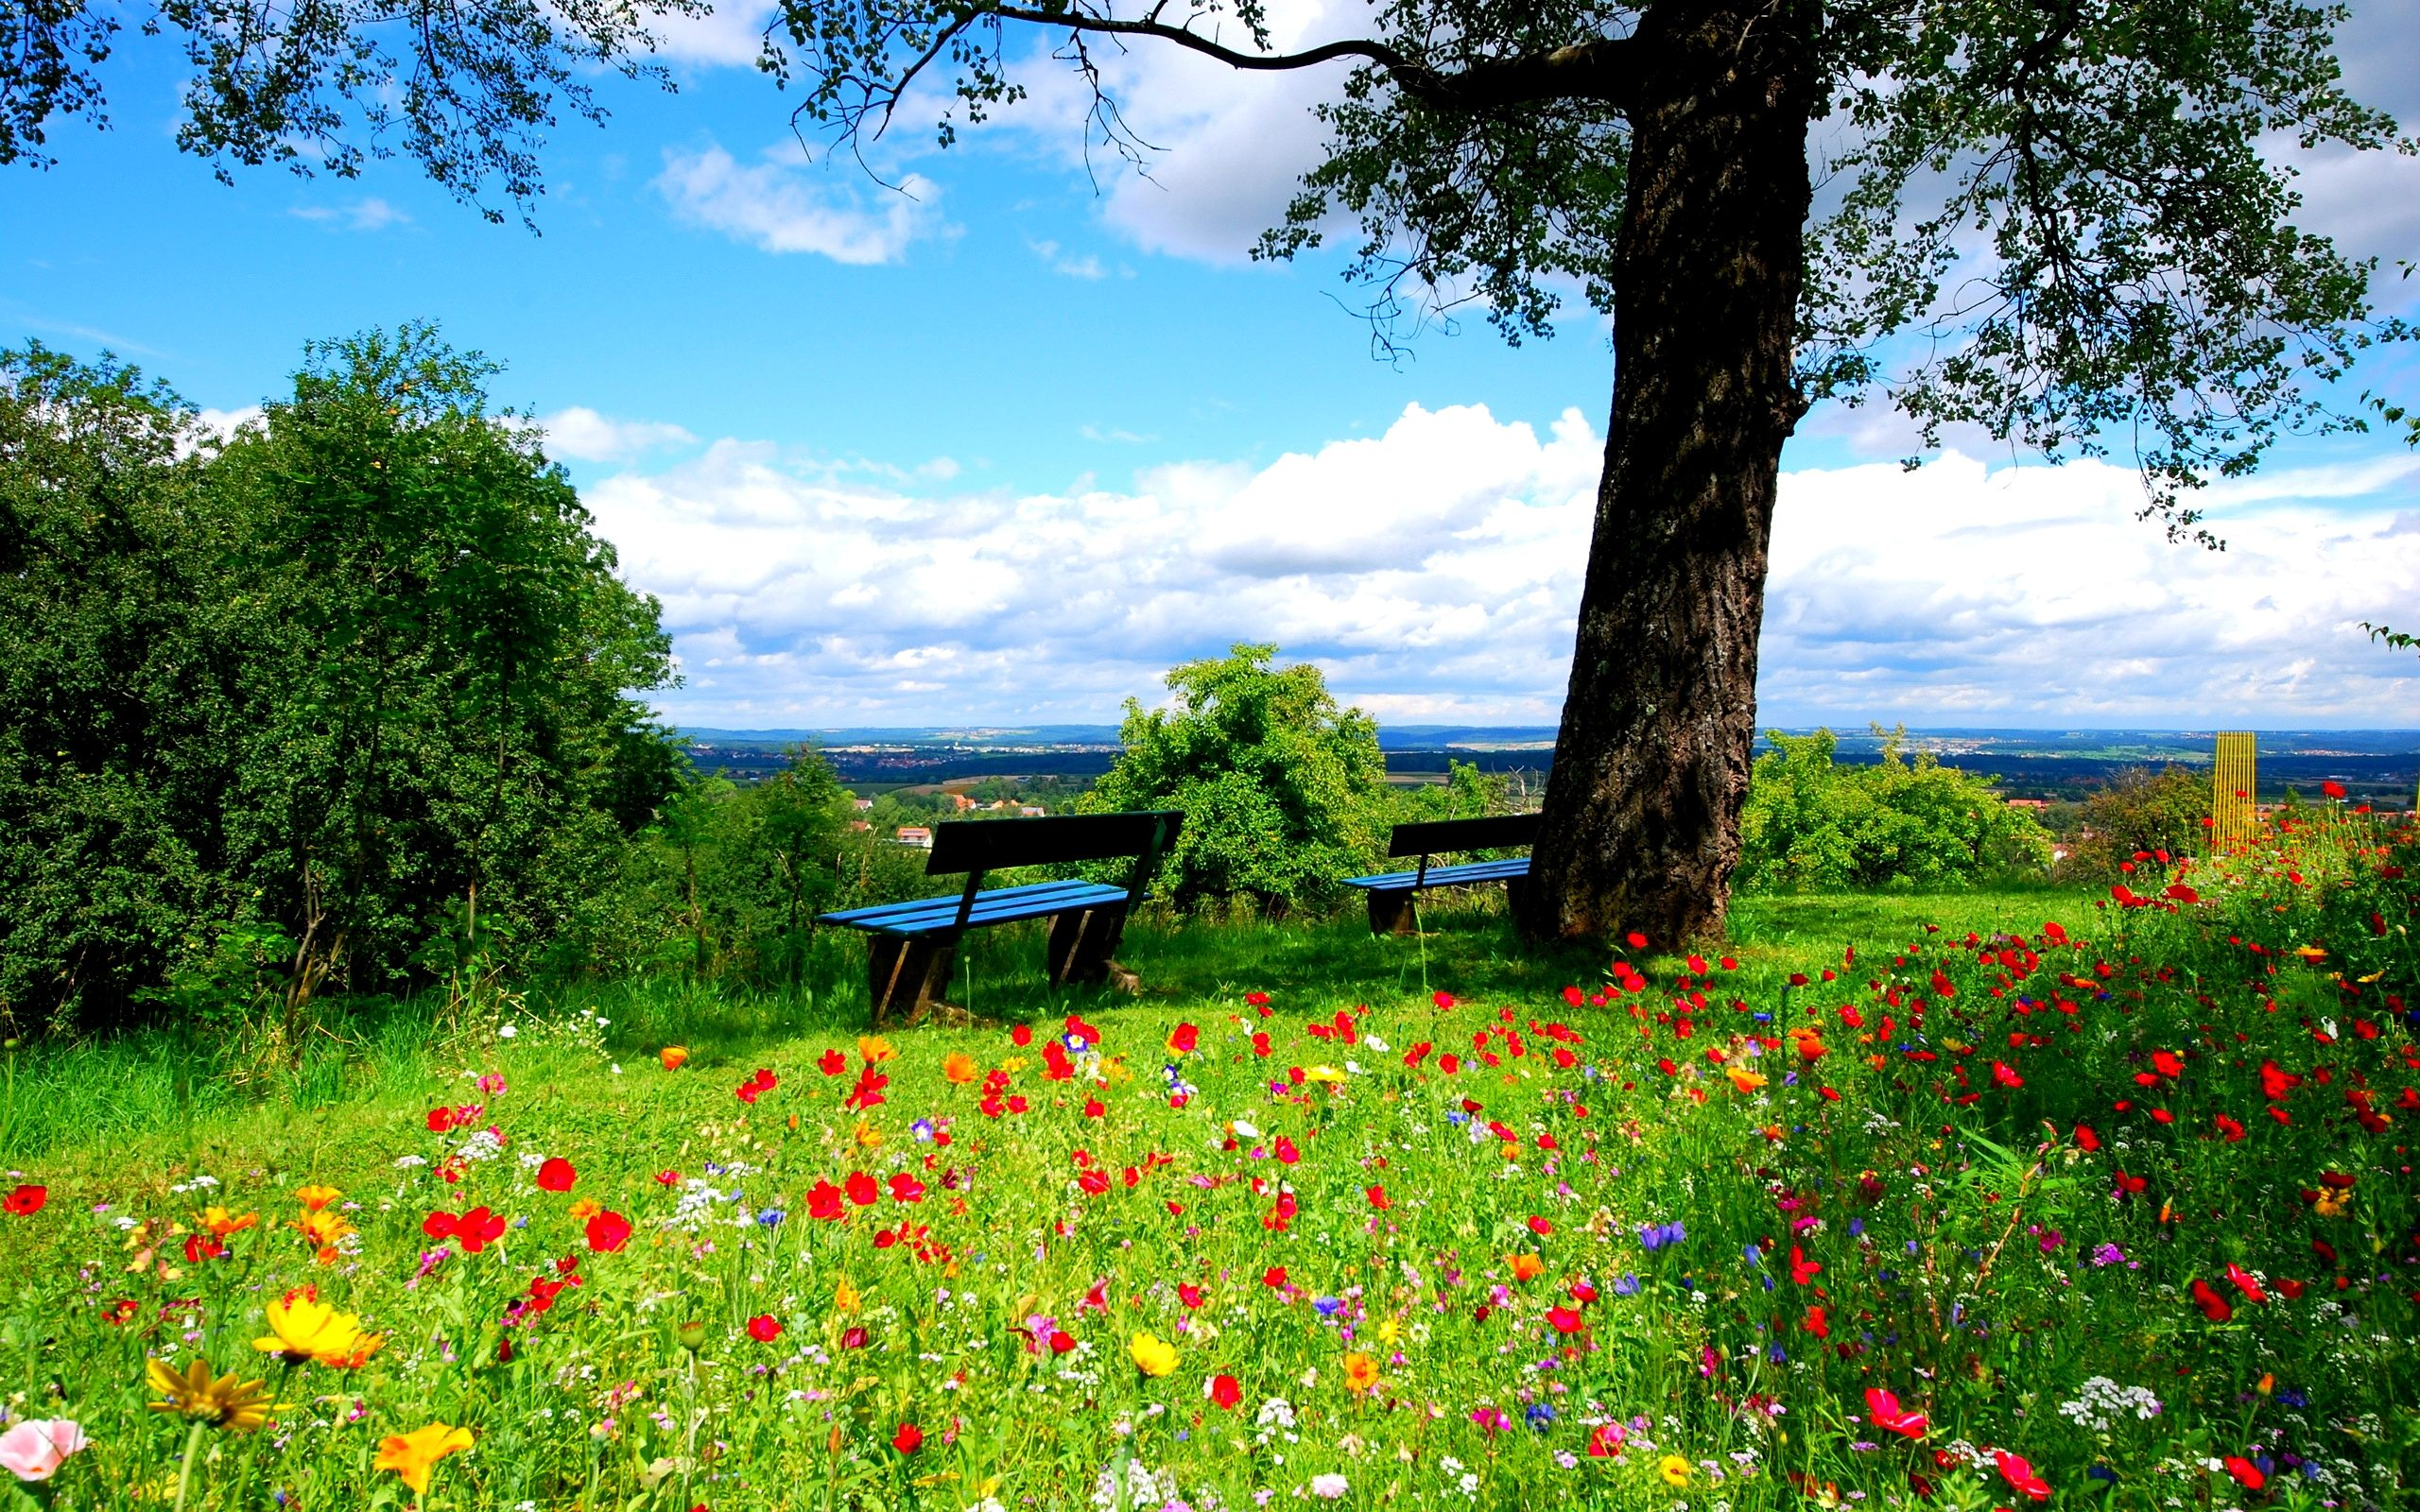 Garden Wallpaper For Android - Beautiful Flowers In Nature , HD Wallpaper & Backgrounds